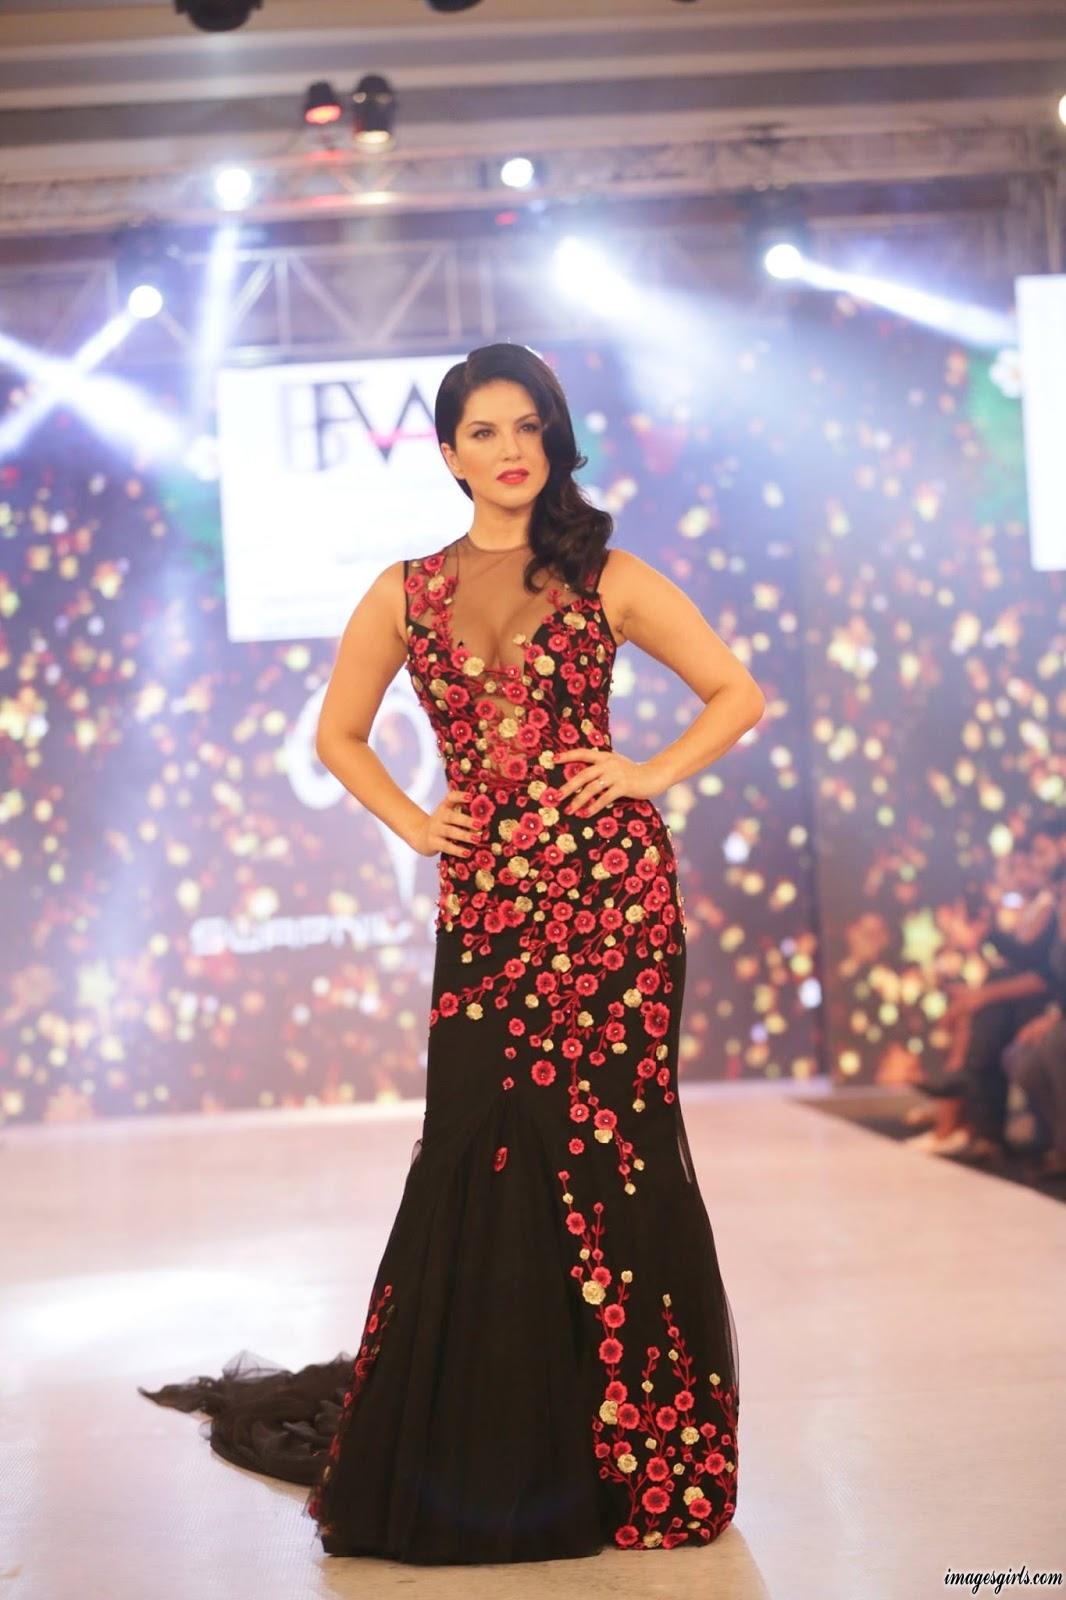 Sunny Leone Walks On Stage At The India Beach Fashion Week - Images Girls-8618